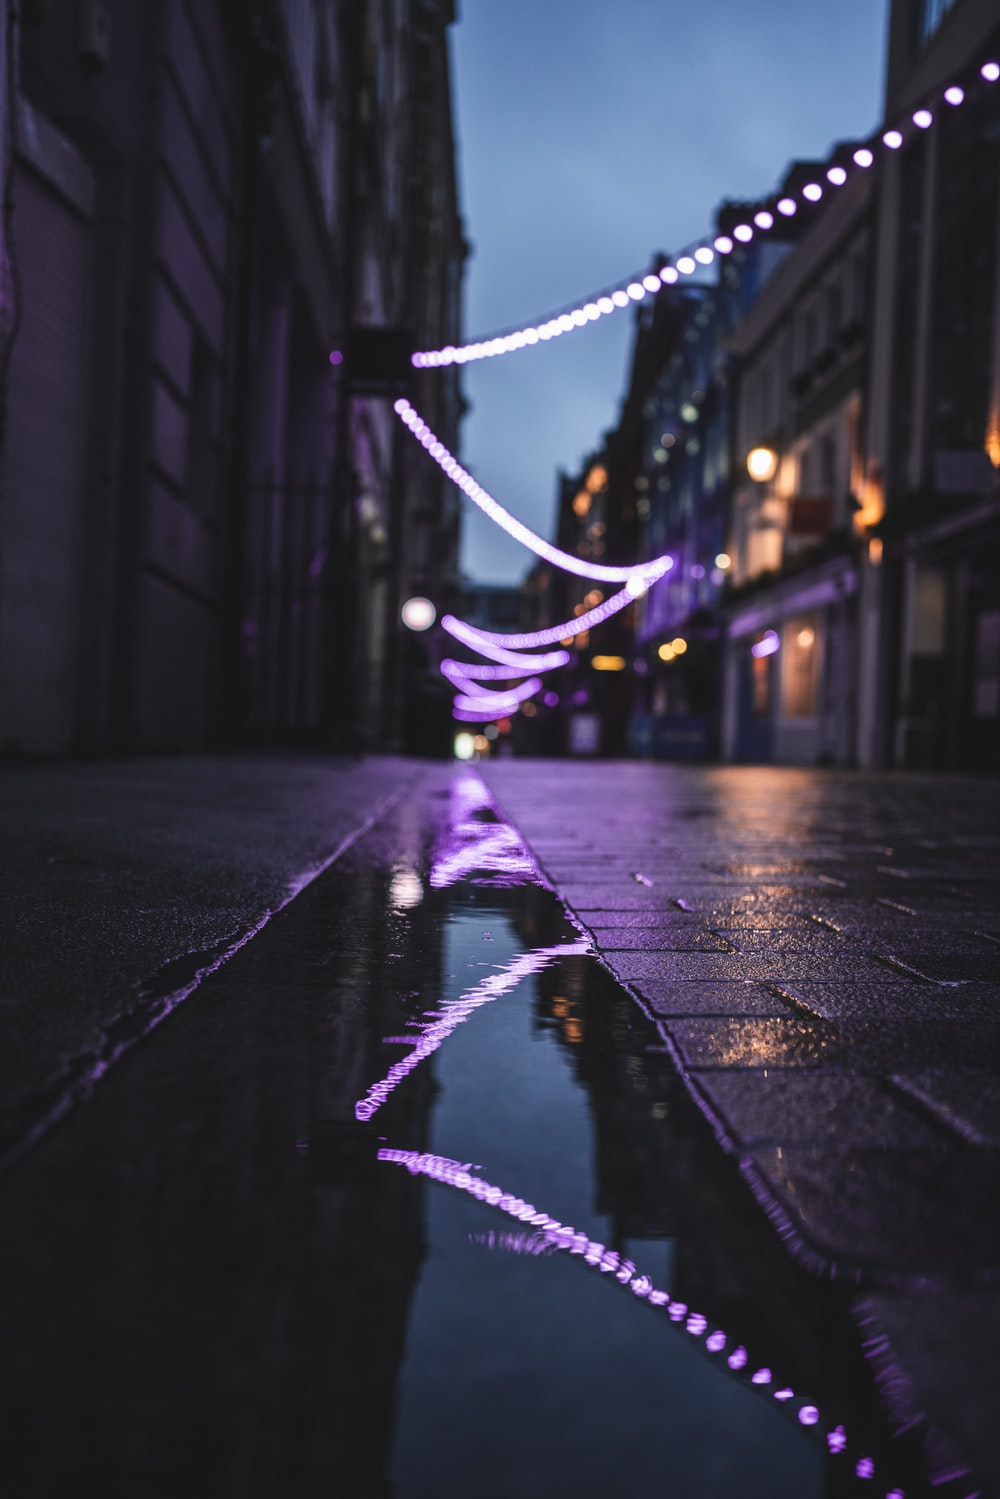 purple and blue string lights on road during night time